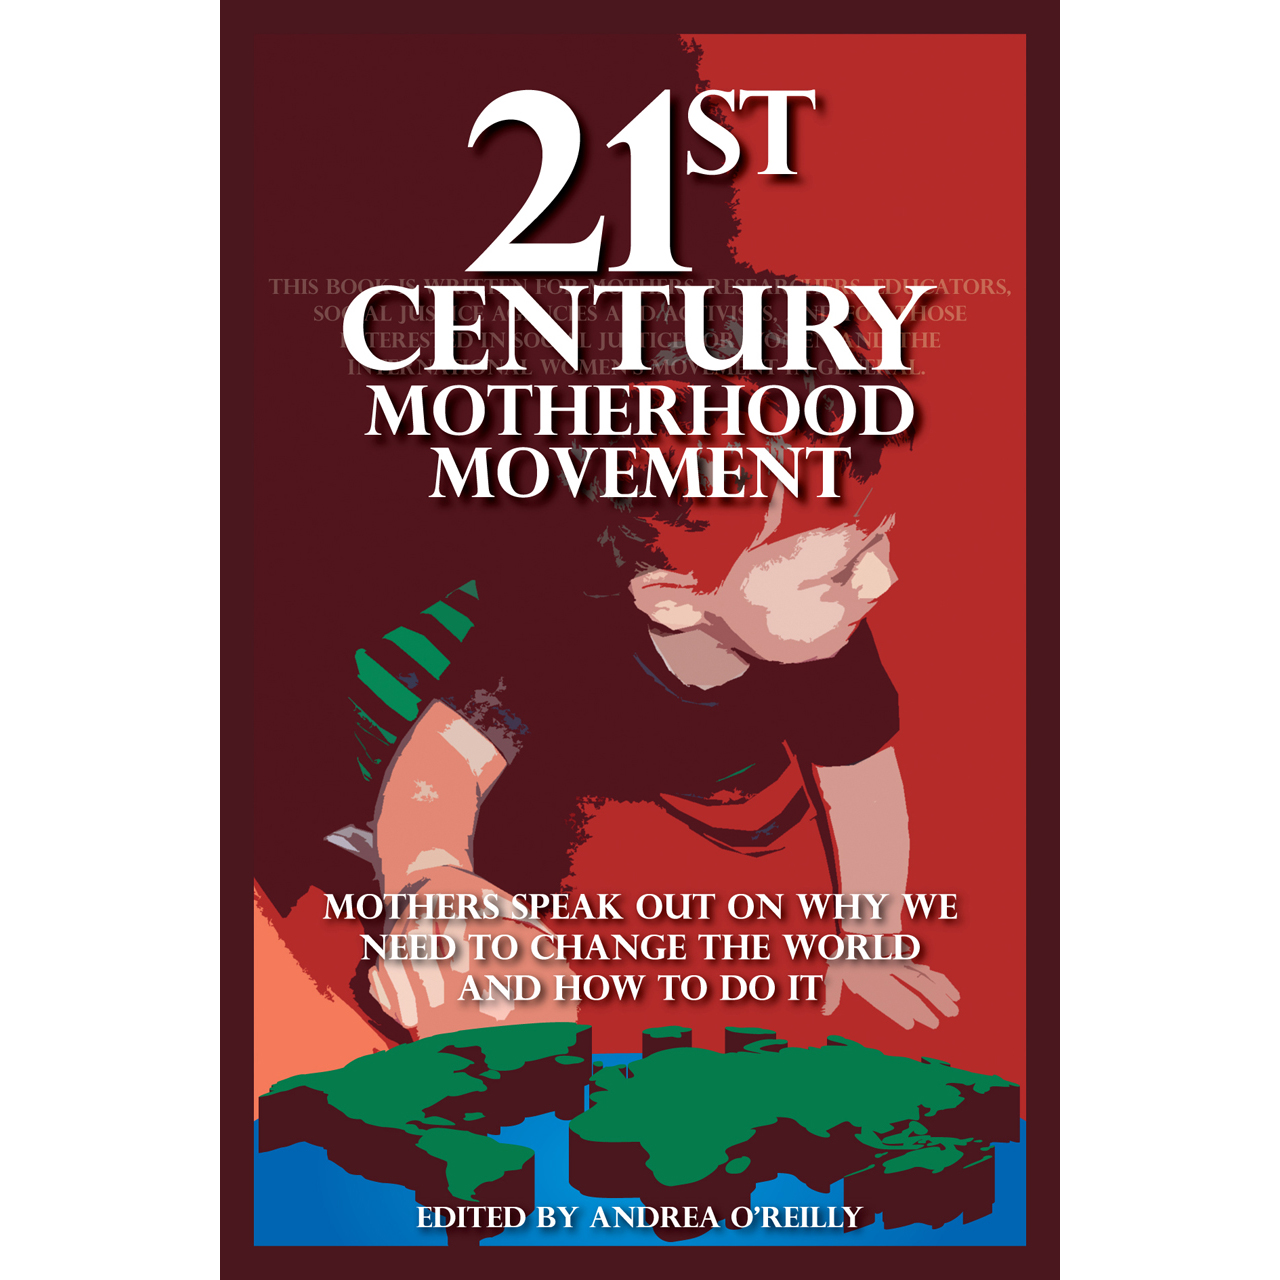 Book Cover Design by arkooburra - Entry No. 20 in the Book Cover Design Contest Unique 21st Century Motherhood Movement. book cover needed.